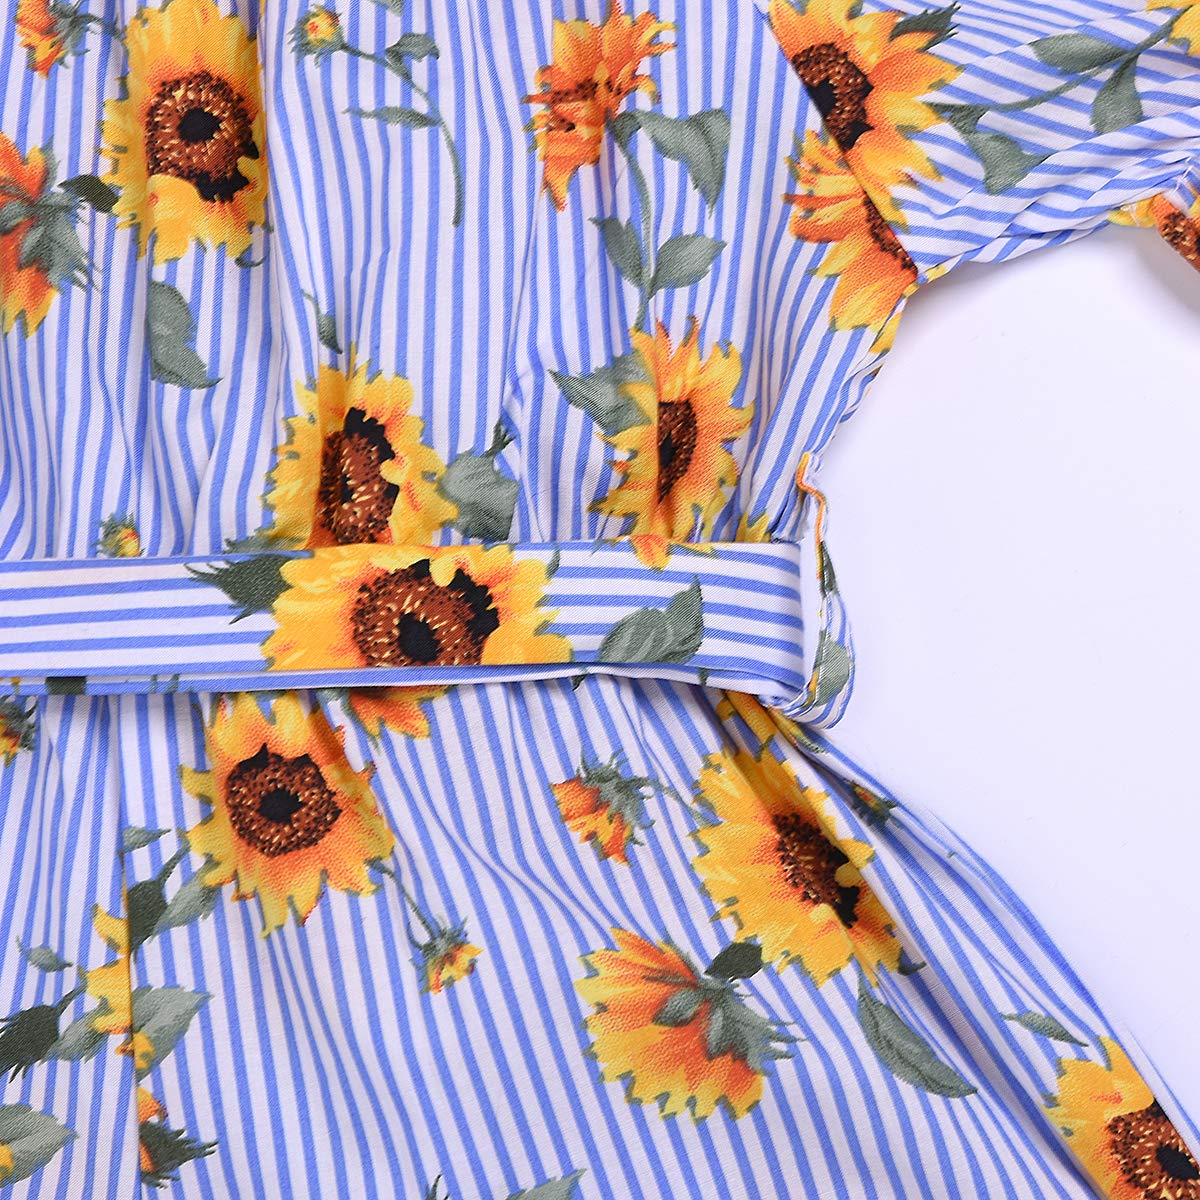 NEEXIJI Toddler Baby Girl Sunflowers Print Romper Summer One Piece Short Jumpsuit with Belt